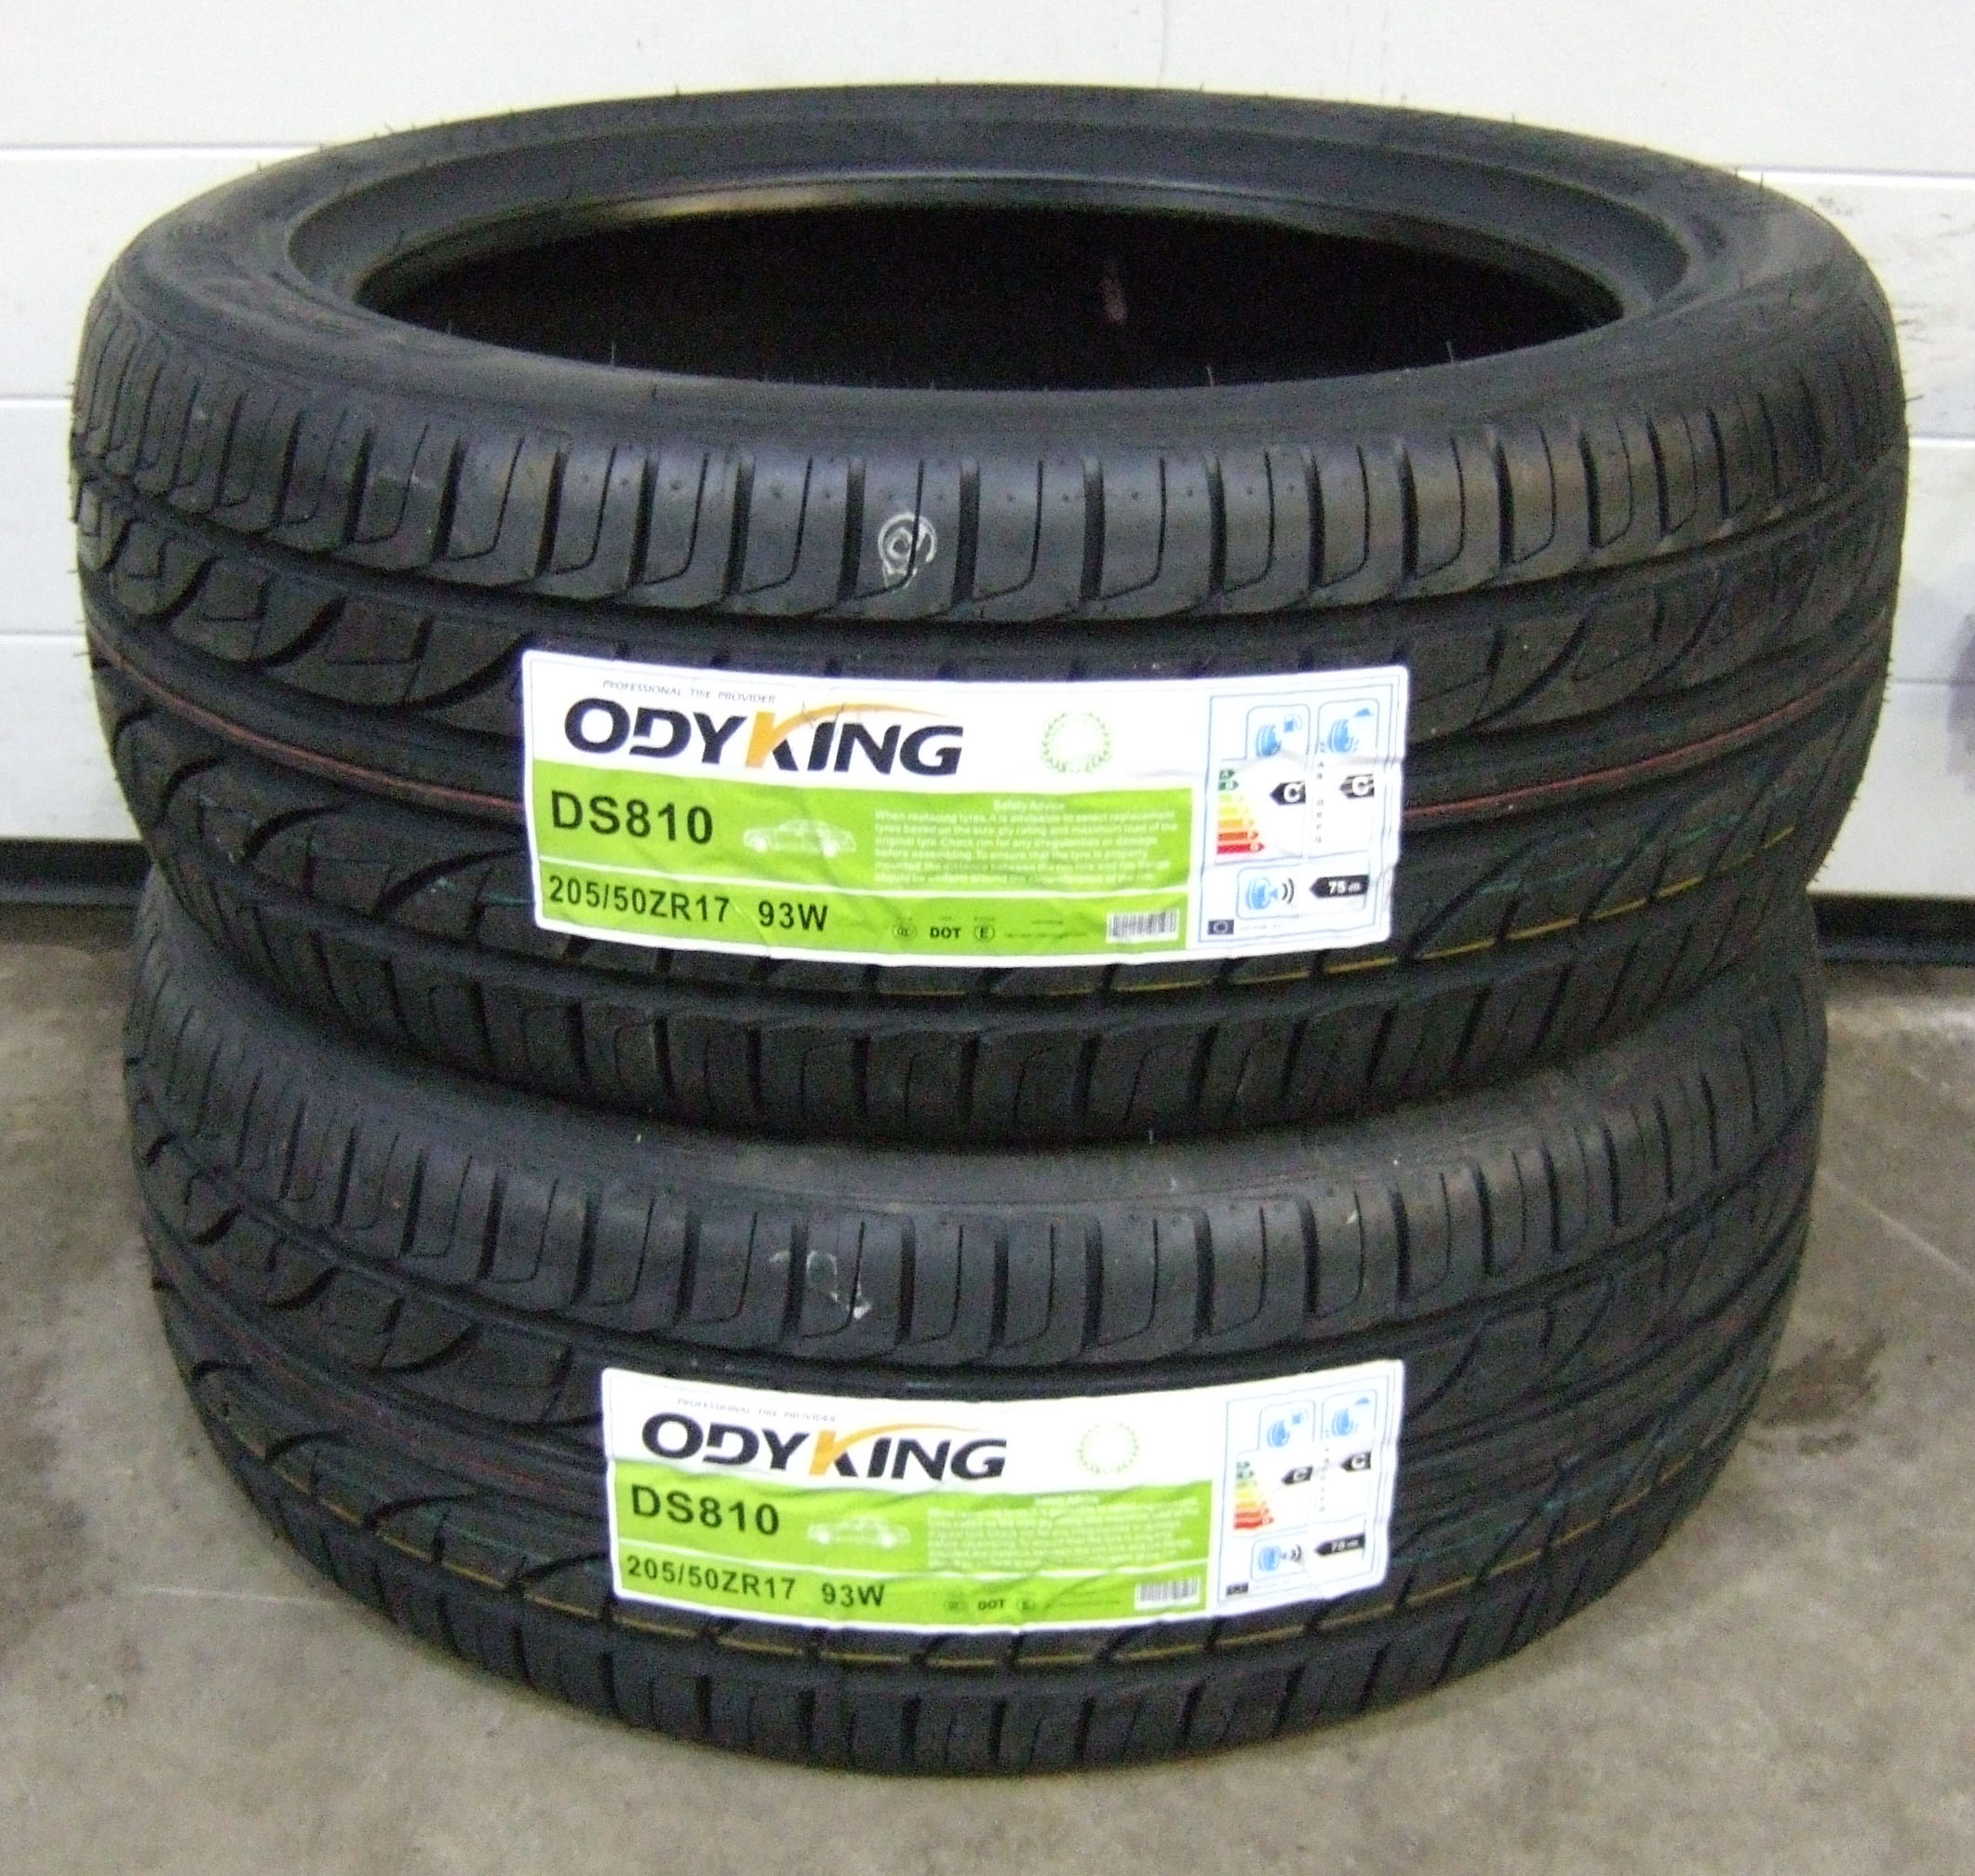 205 50 17 odyking ds810 premium budget tyres 2055017 93w 205 50 17 x2 ebay. Black Bedroom Furniture Sets. Home Design Ideas